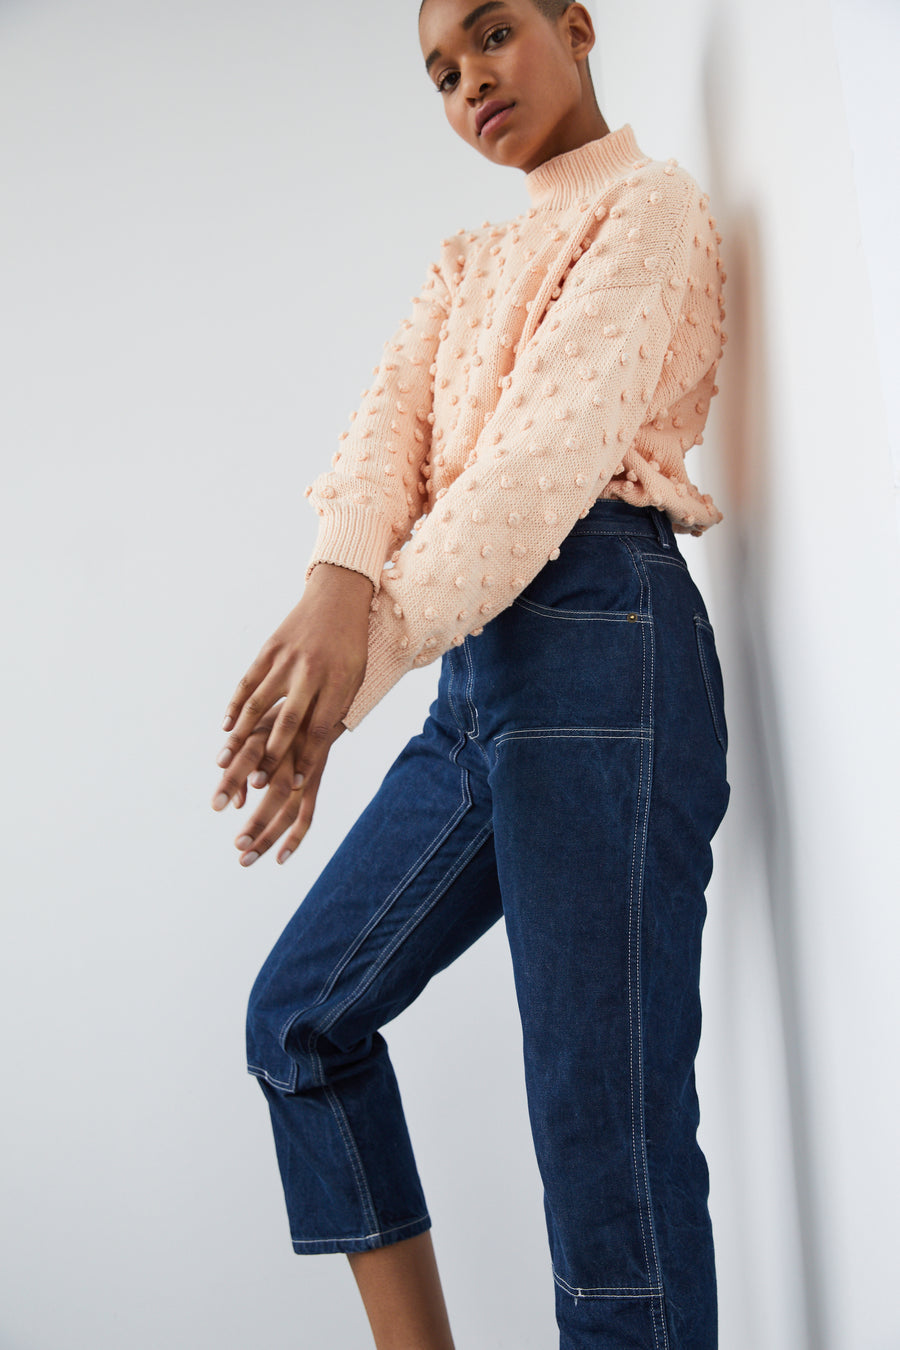 Adult Popcorn Sweater - Light Peach